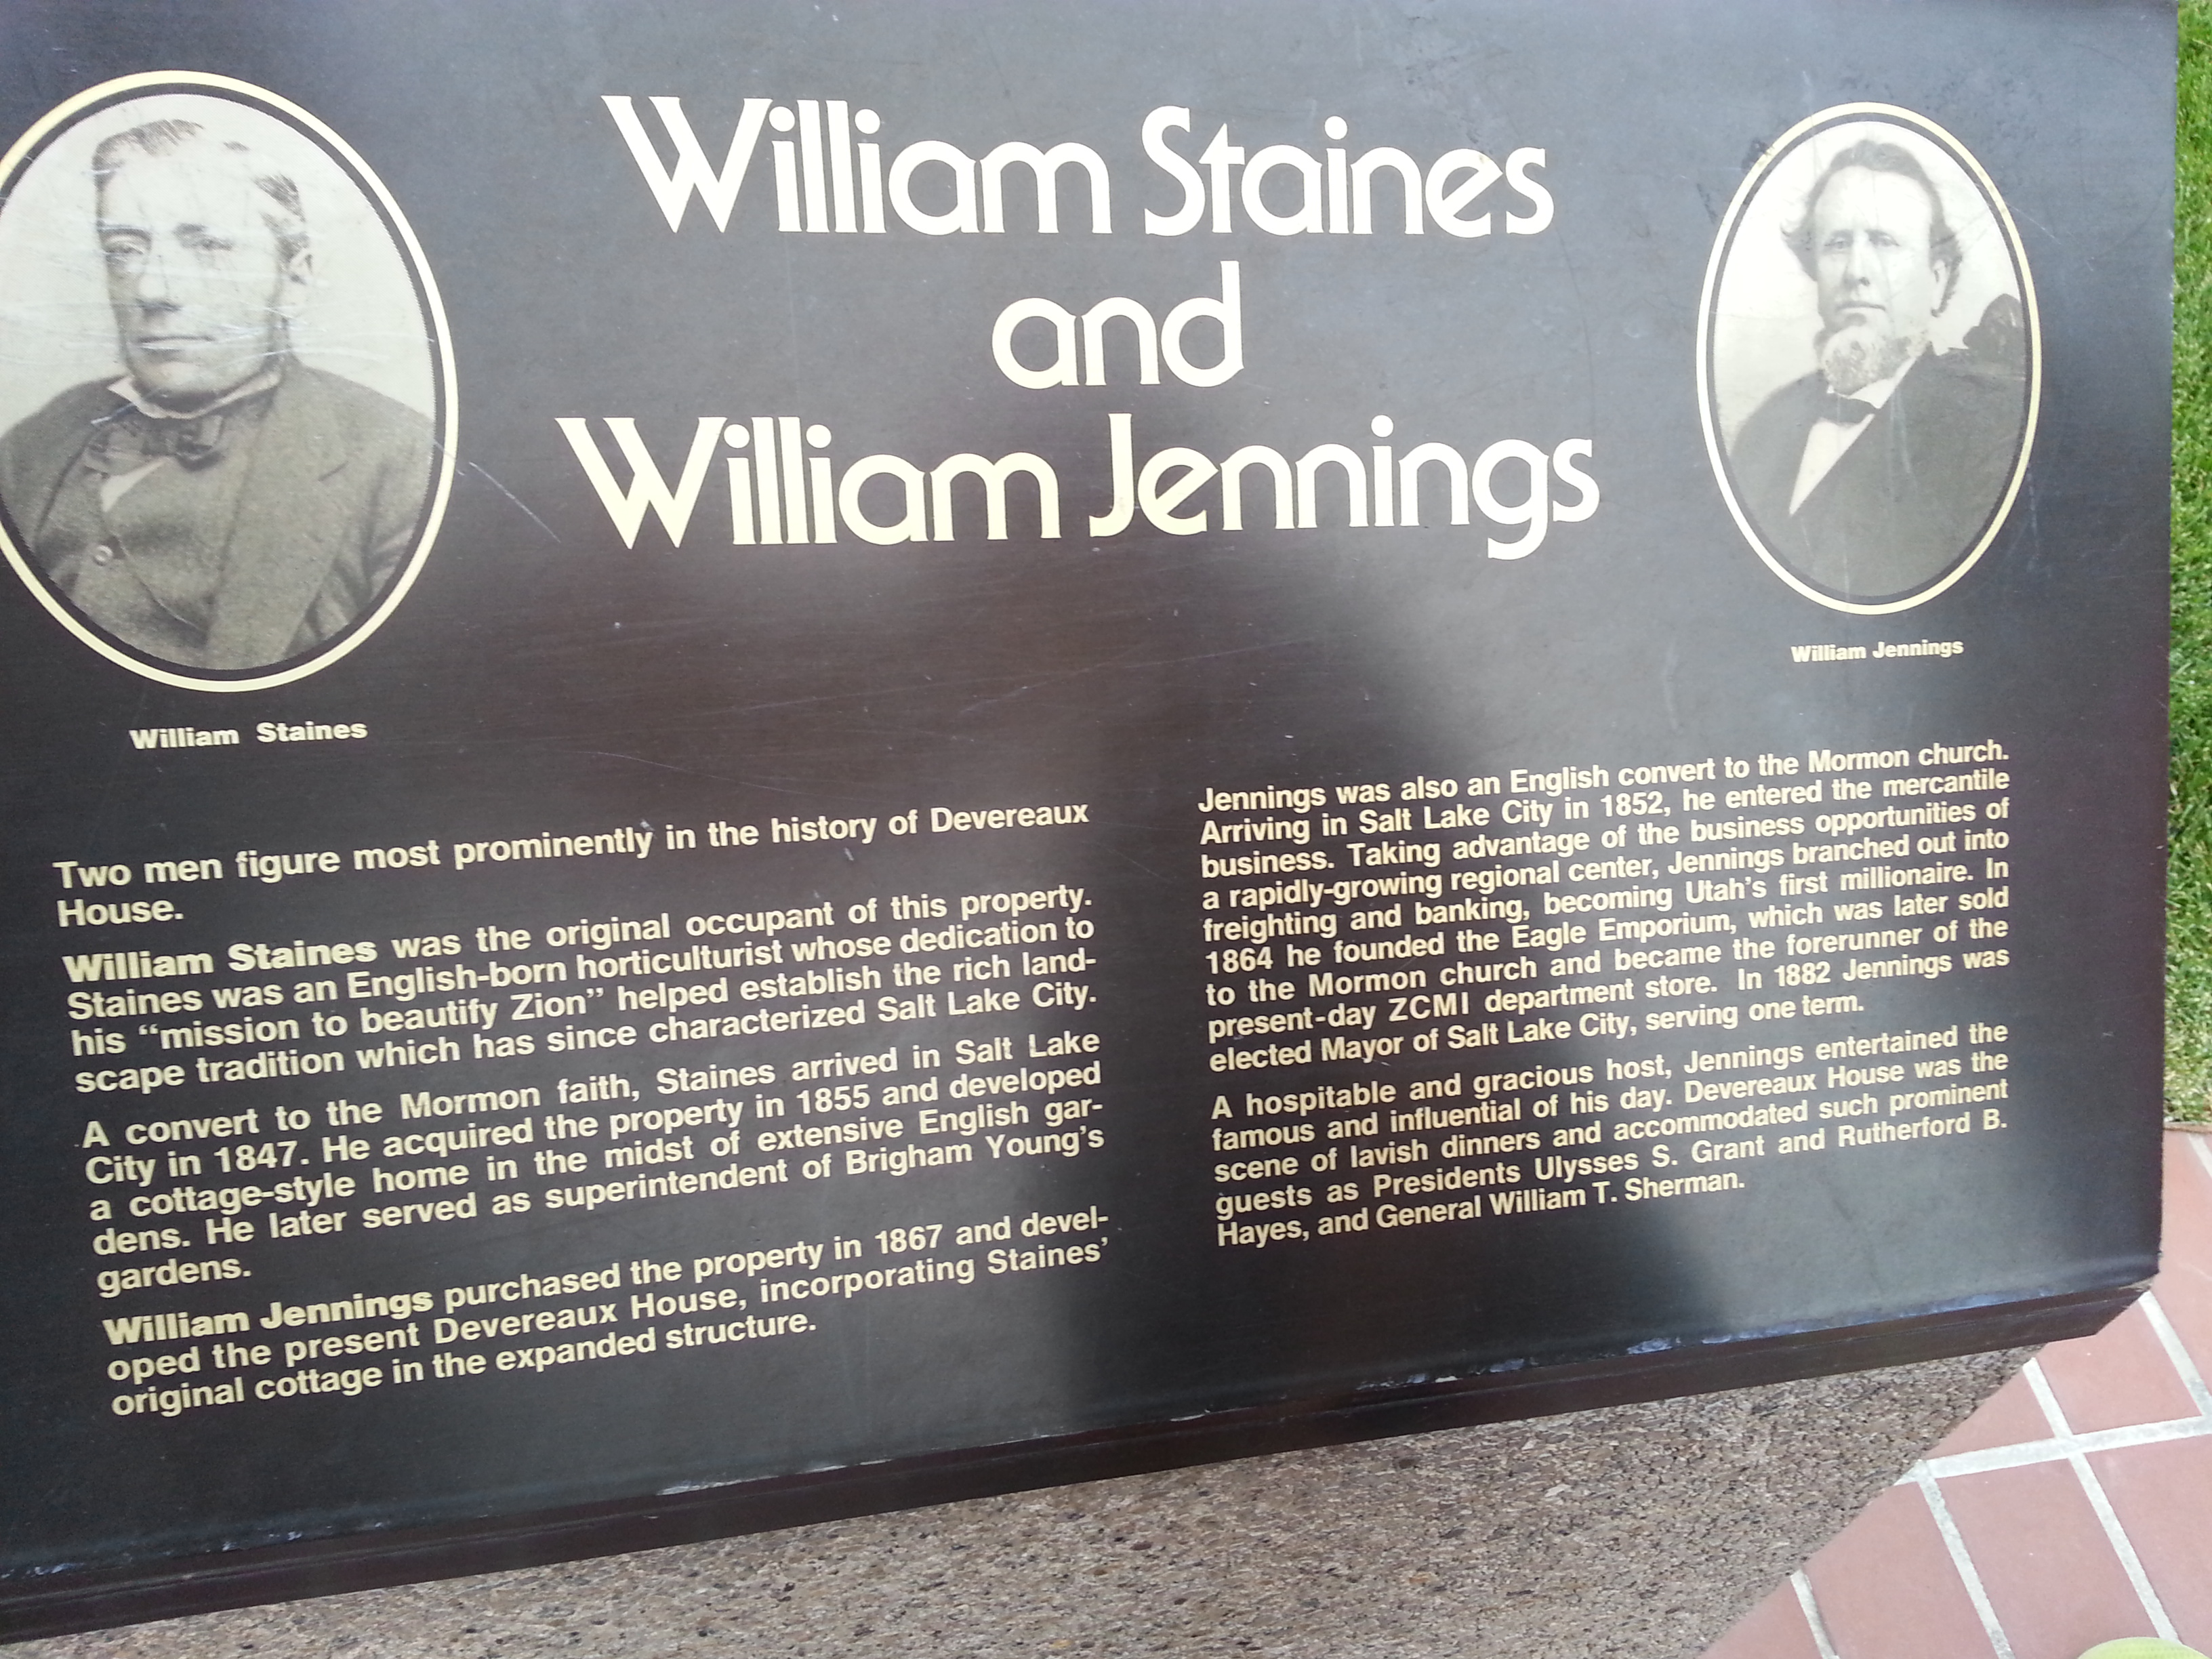 Plaque at Devereaux House with photo of Staines and Jennings